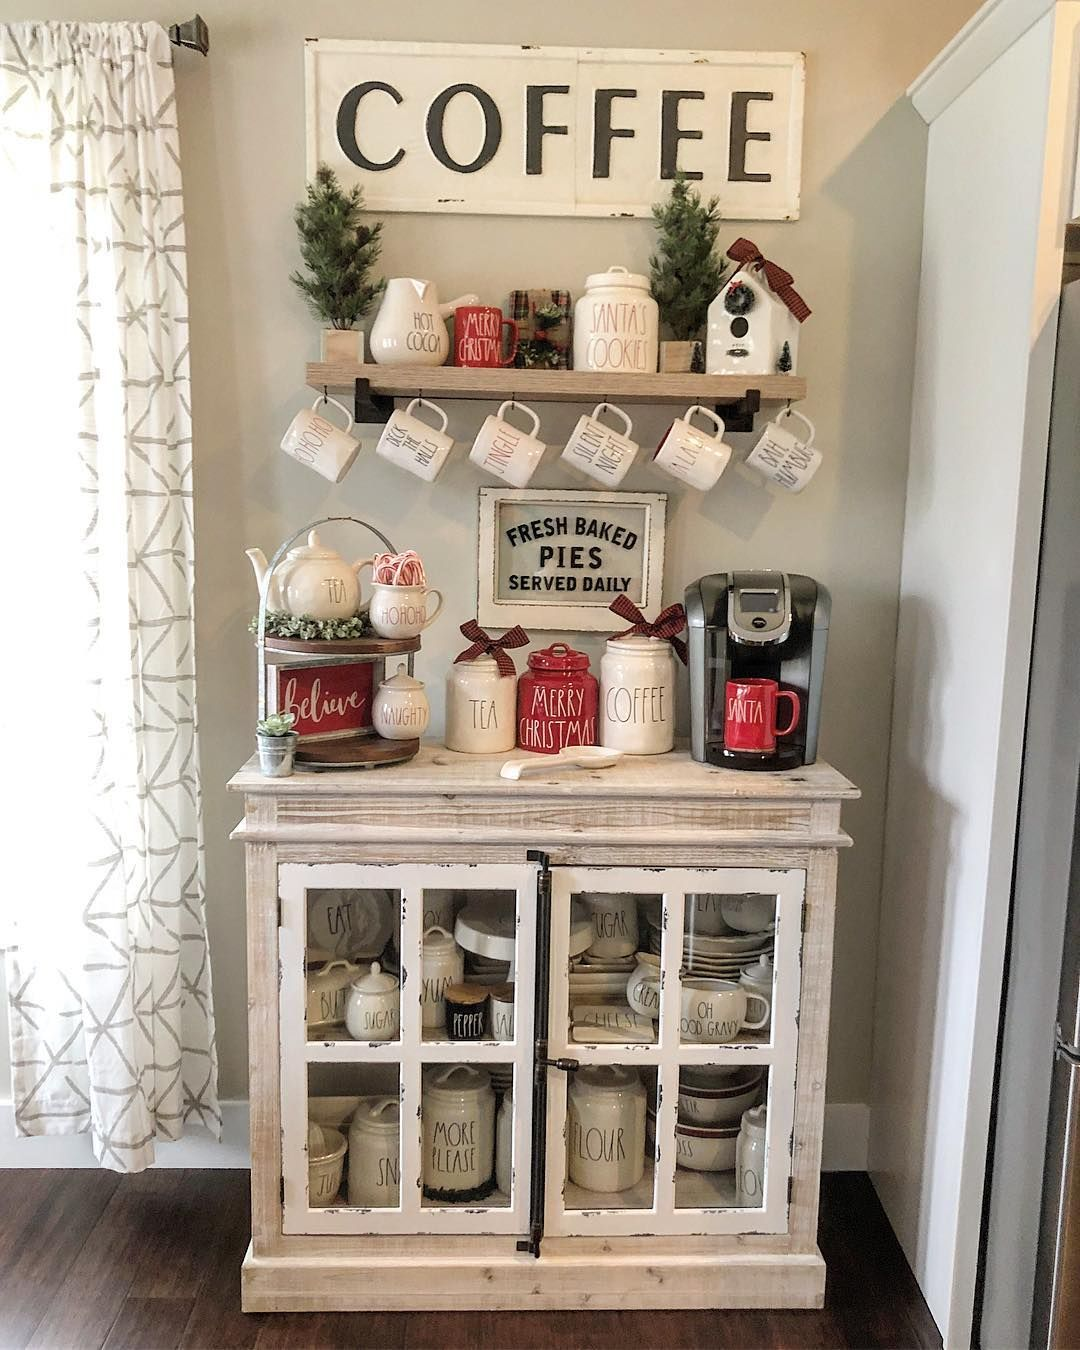 "Modern Farmhouse Decor|Charity on Instagram: ""Sharing one of my absolute favorite spaces in our home! My handy husband made me this beautiful coffee bar for our anniversary this year!…"""